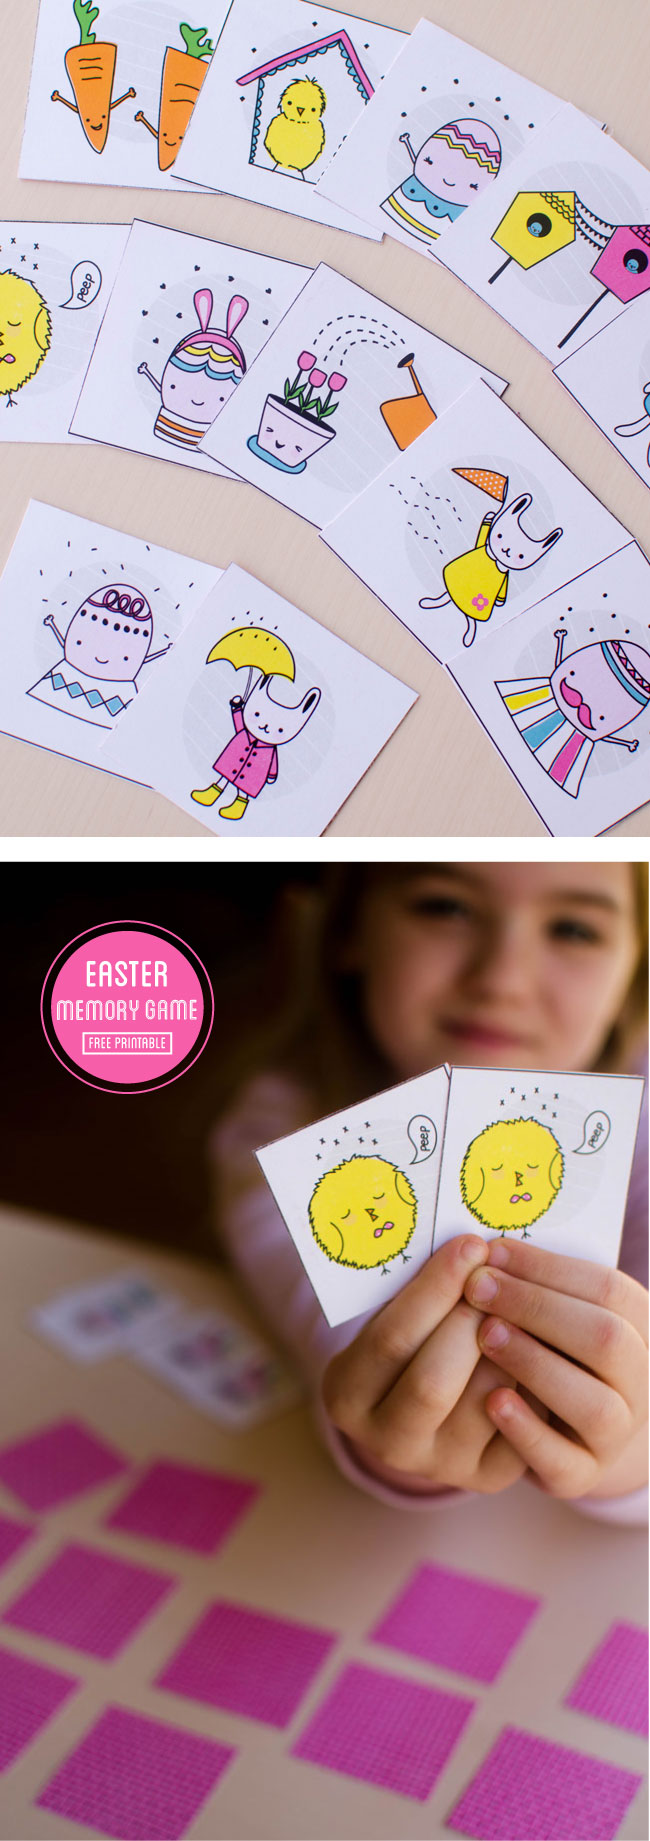 Easter Memory matching game | free printable from www.paperloving.com